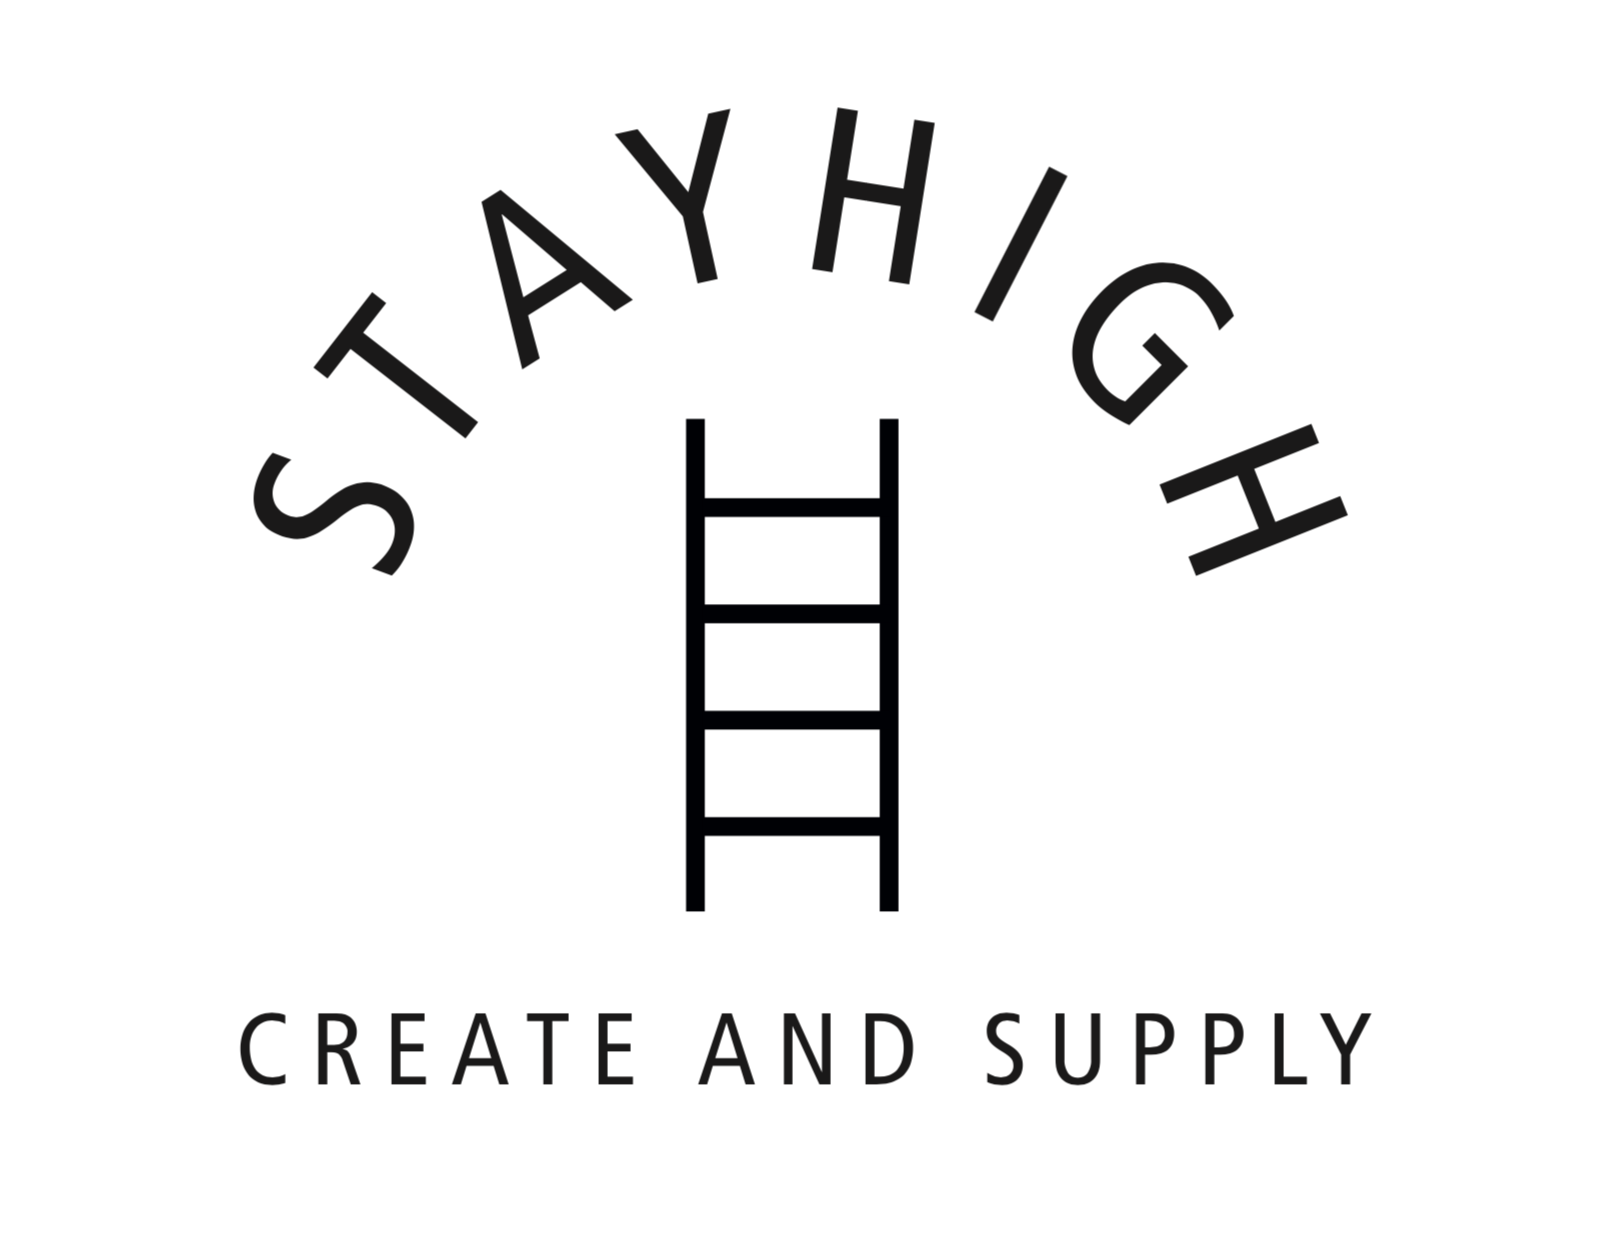 stayhigh.ch - Stay High is a creative agency for anything covering graphic design, photography production, film production, consulting... whatever the needs of your brand & business might be, we've got you covered.